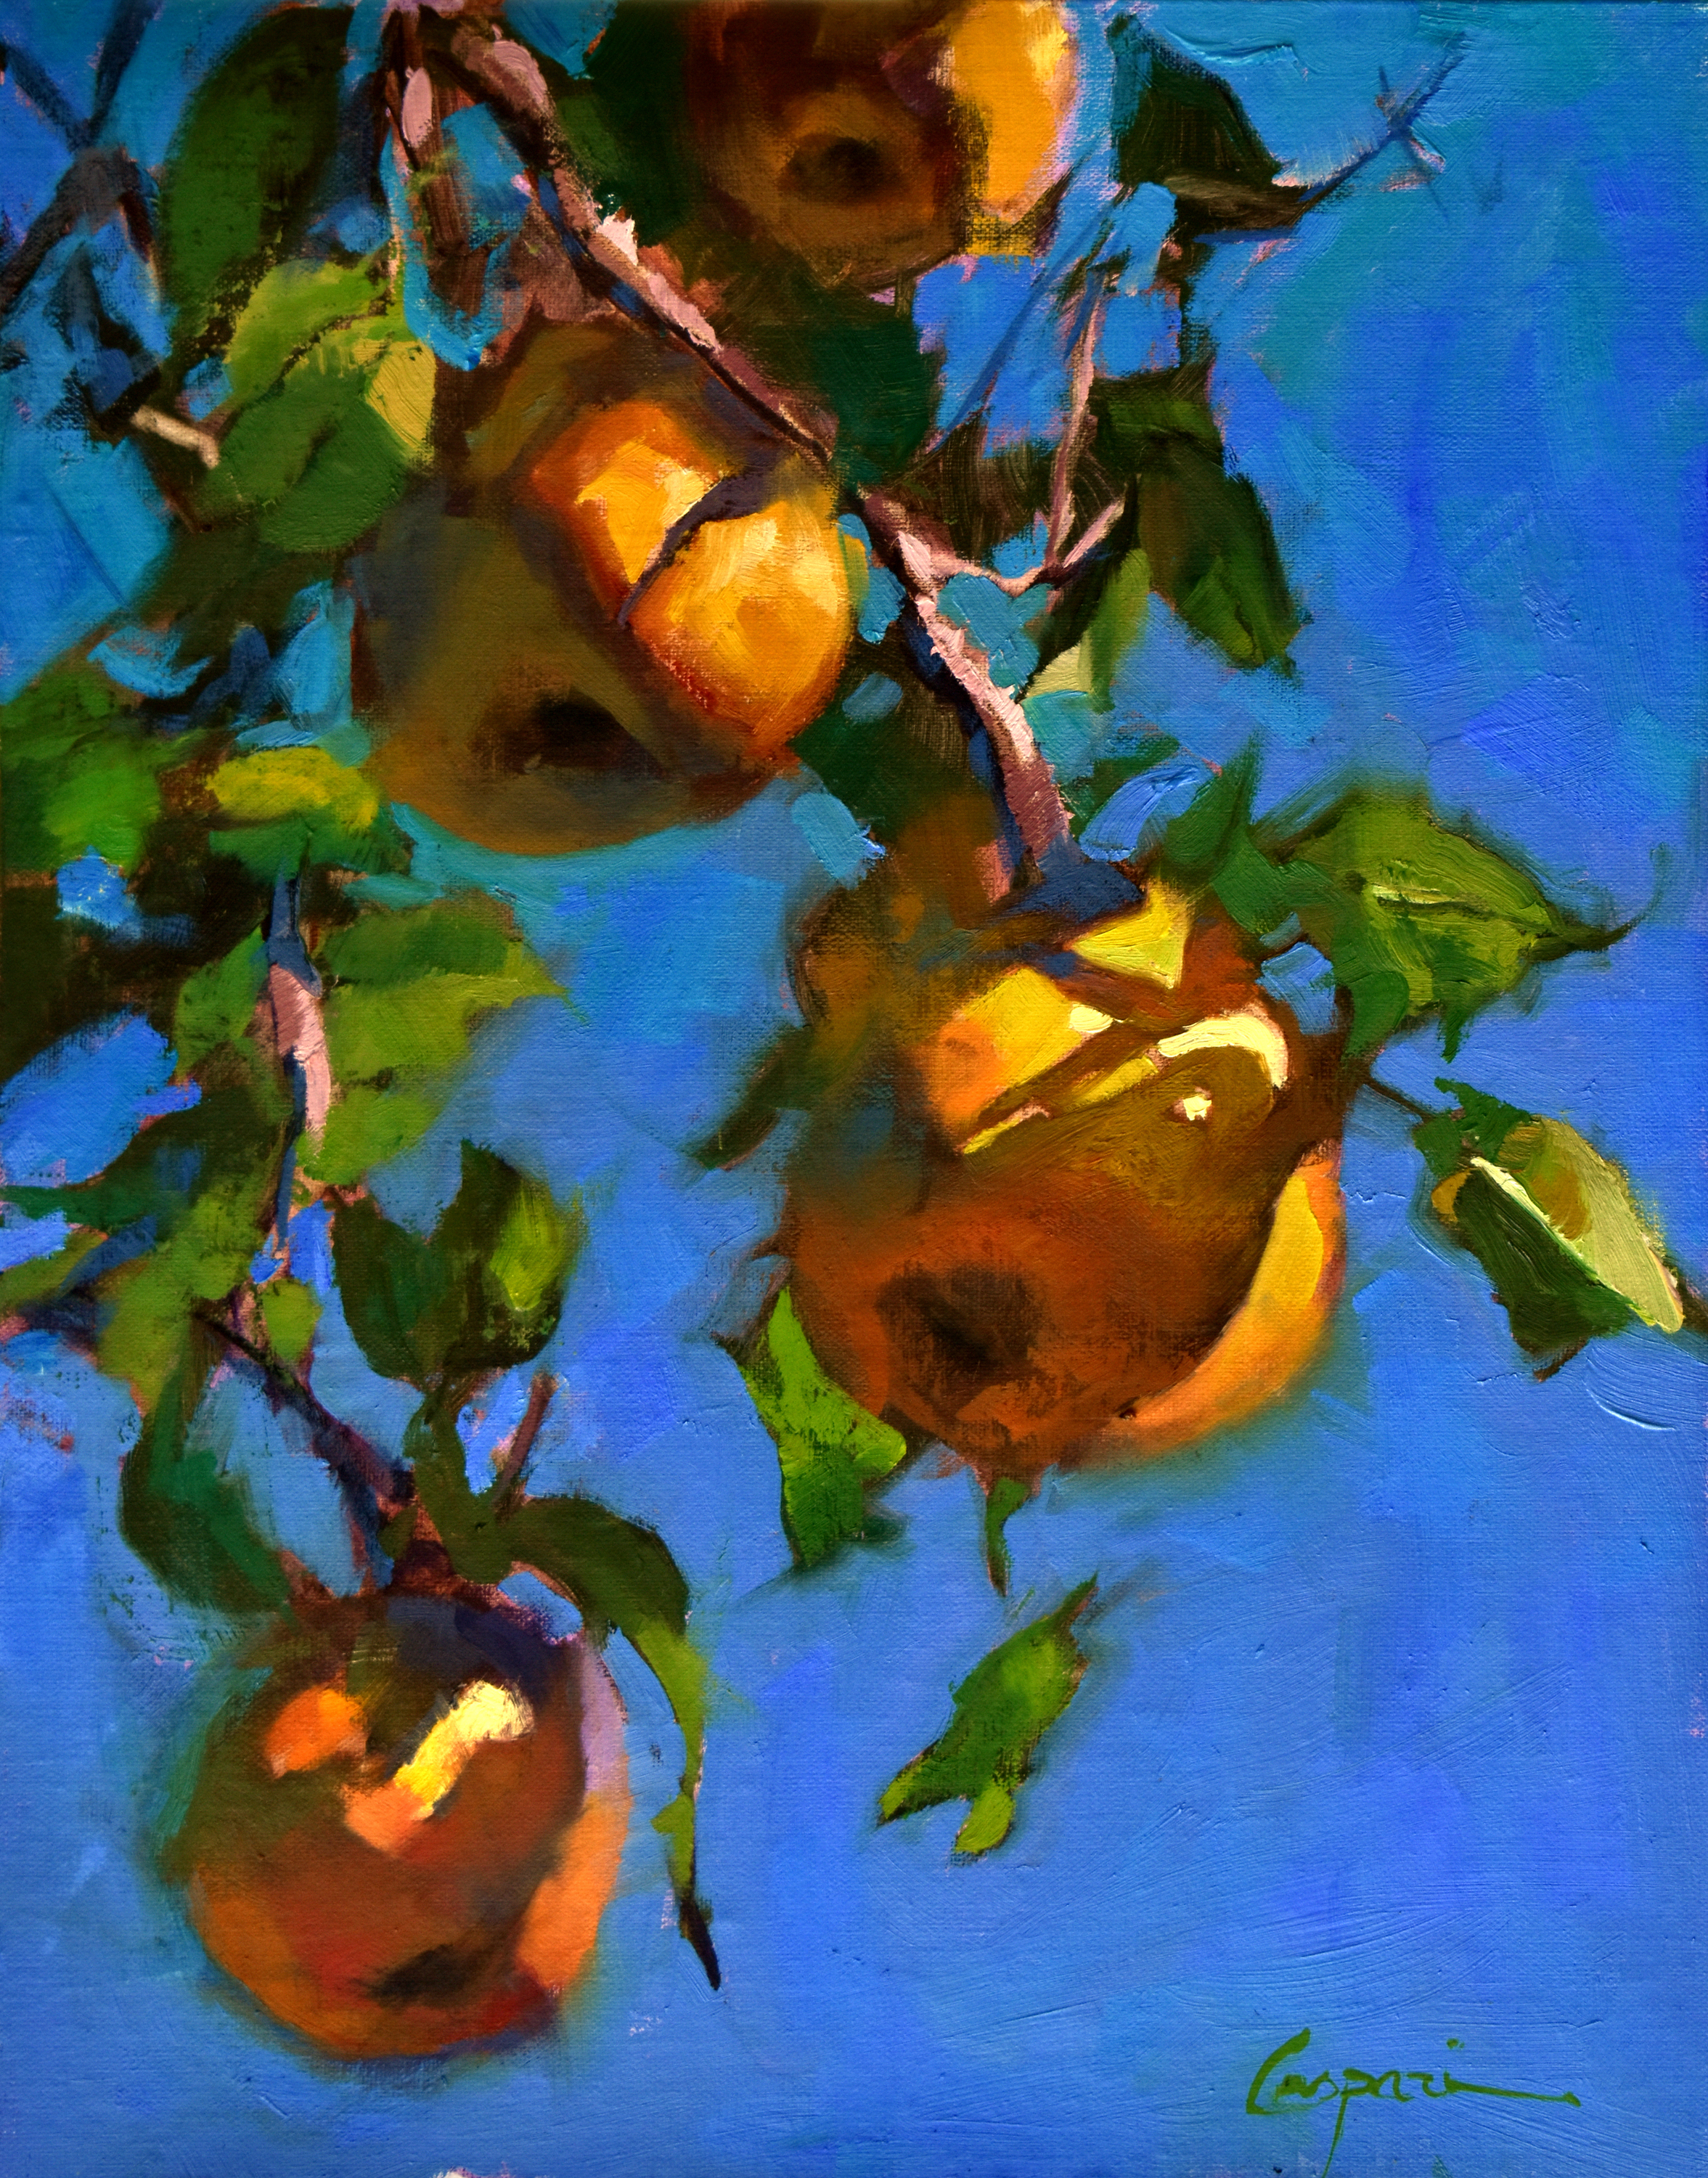 Summer pears 11x14 oil 2020 uoqtm7